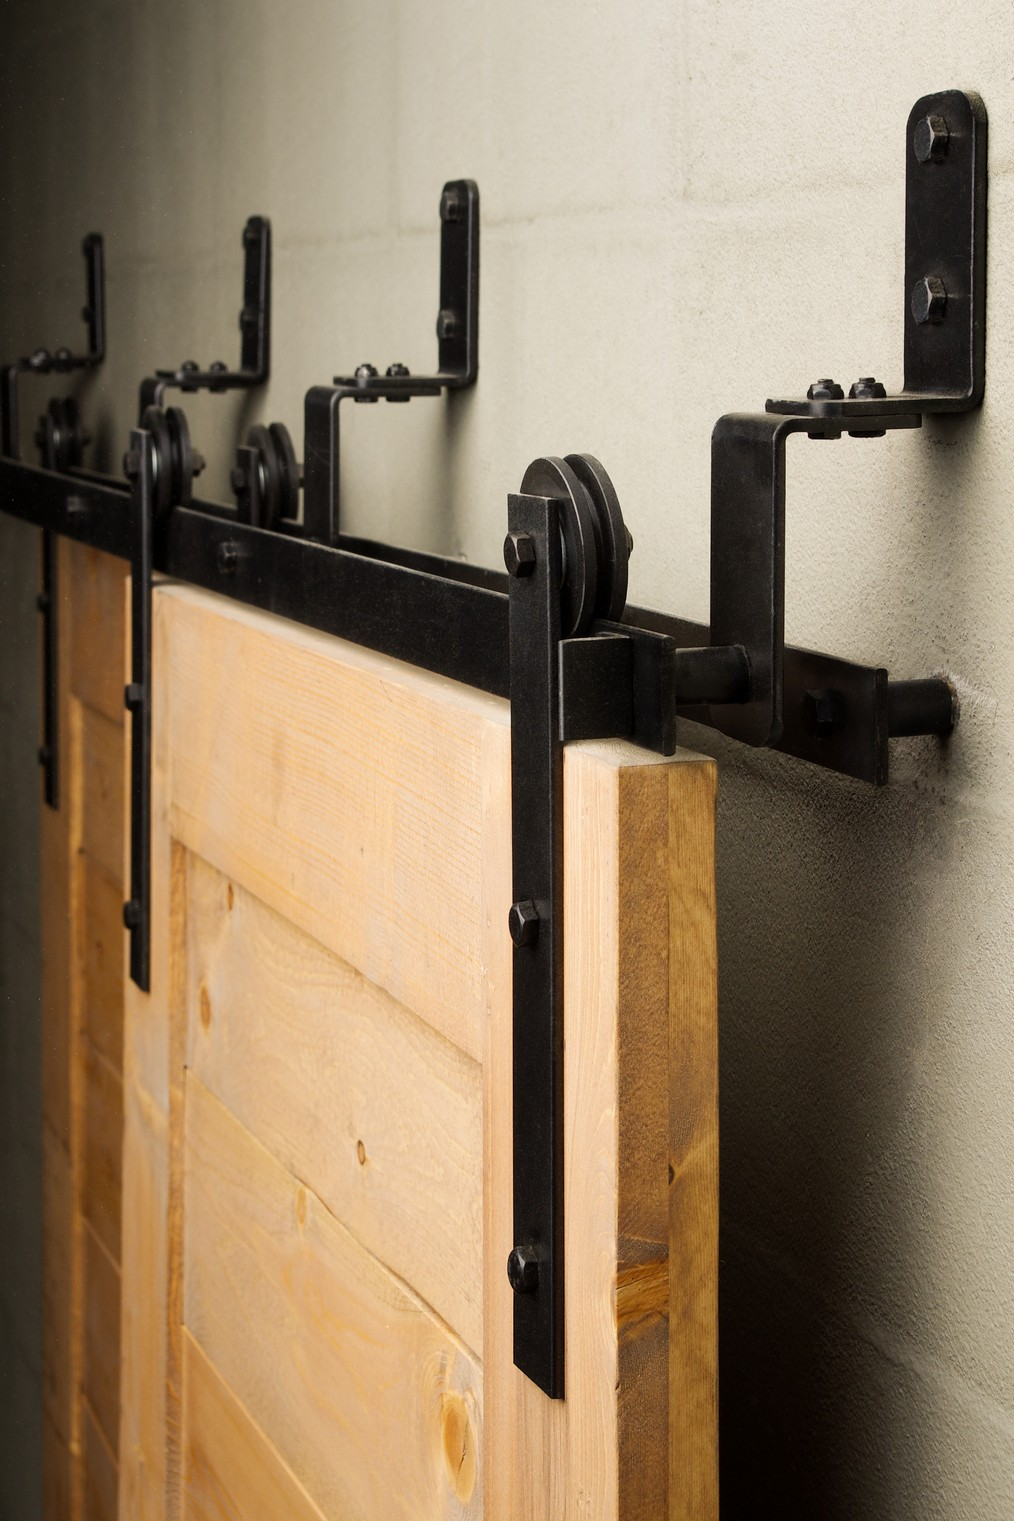 21 Exciting ways to use sliding door hardware to spruce up ...